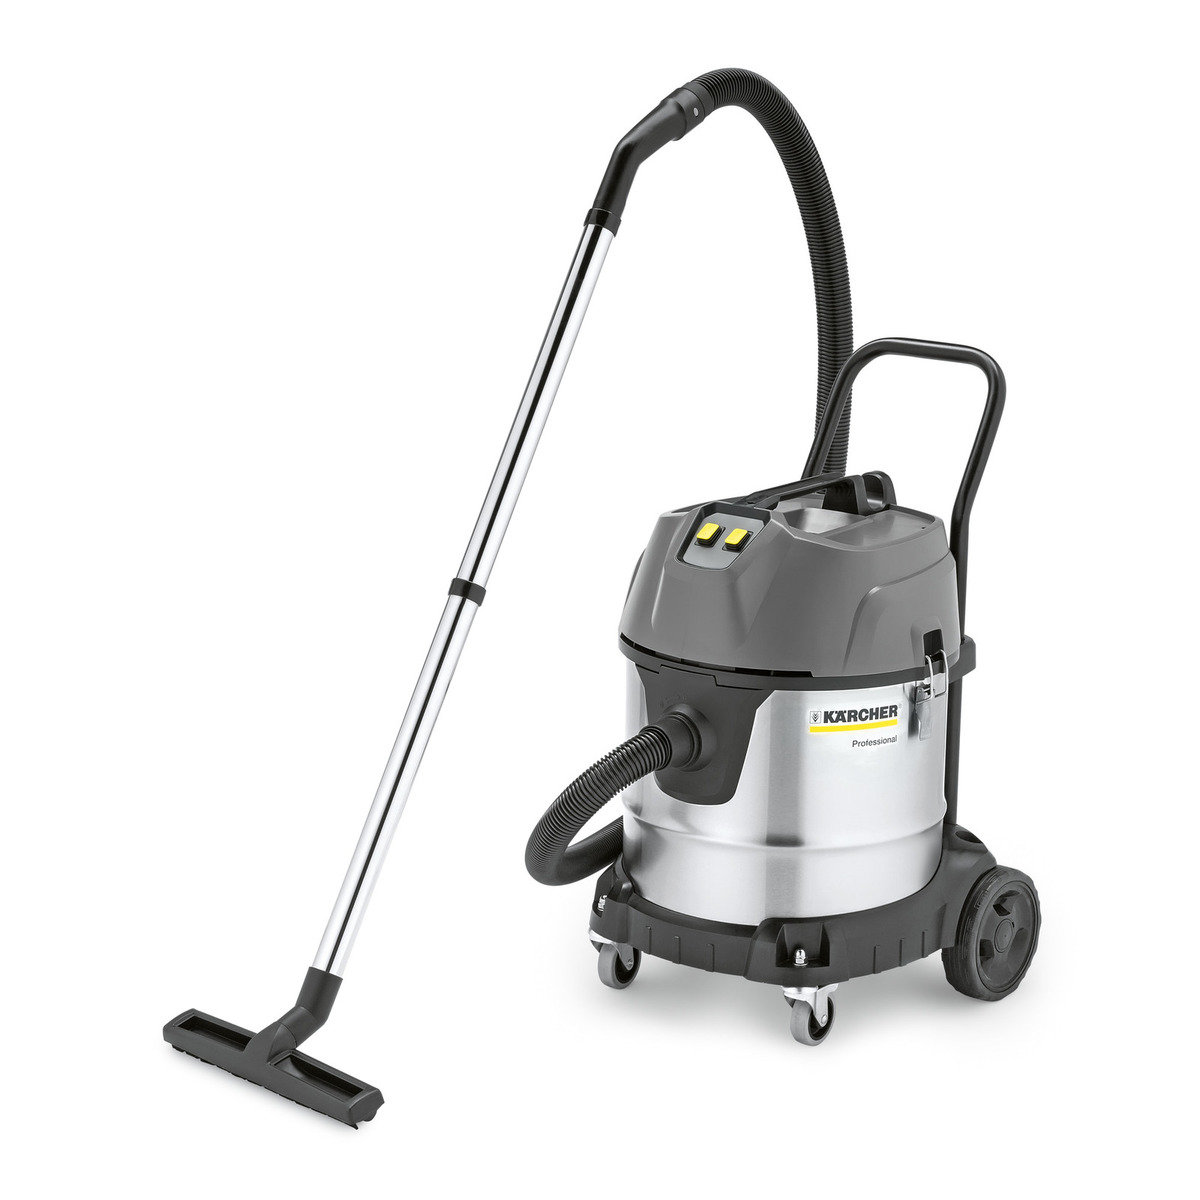 Karcher Standard Type Filter Wet Dry Vacuum Cleaner Nt 50 2 Me Wd Classic Image